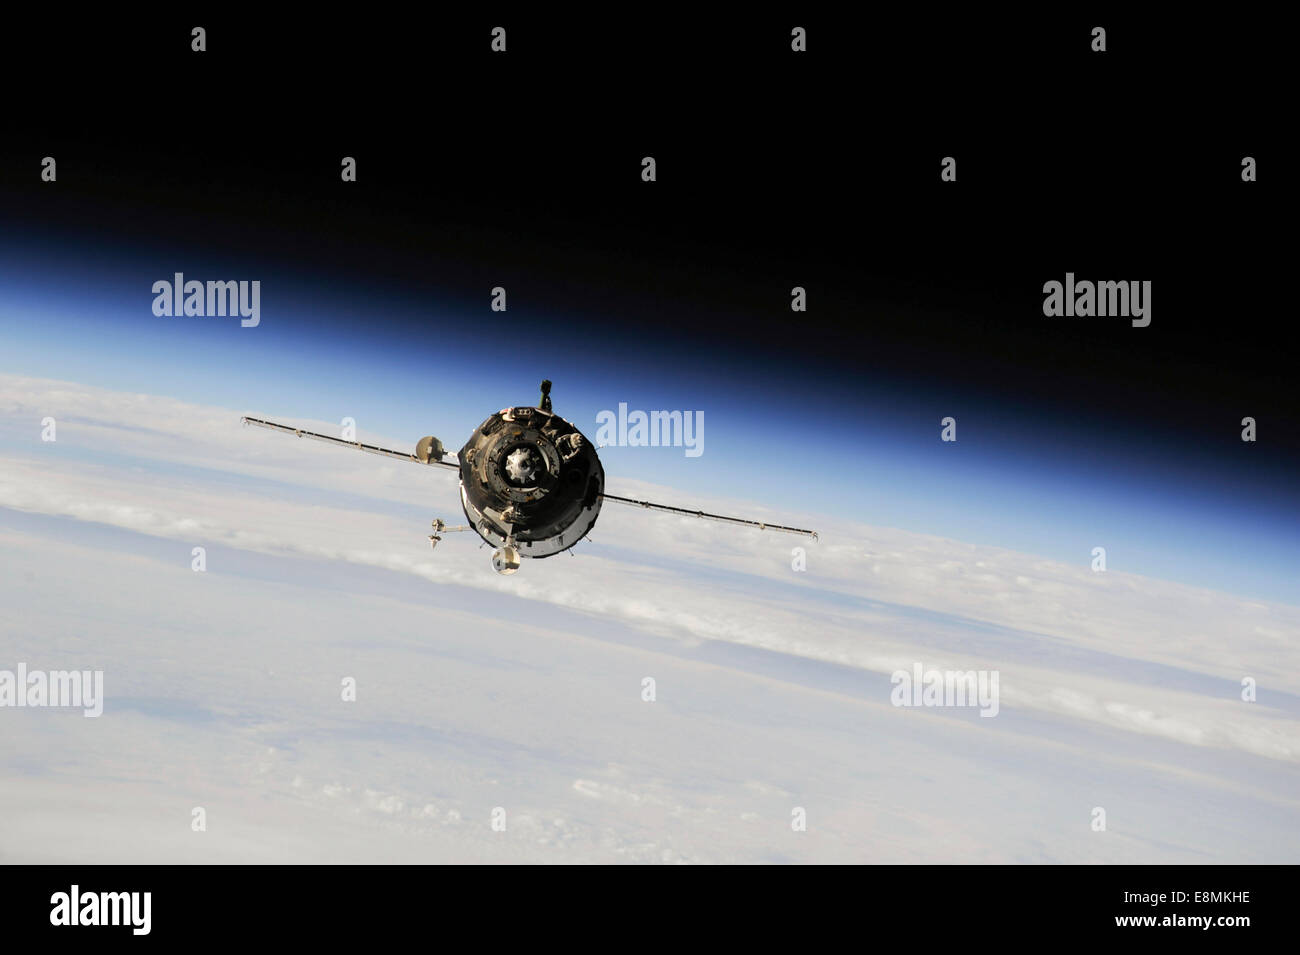 September 25, 2013 - The Soyuz TMA-10M spacecraft in orbit above Earth. - Stock Image